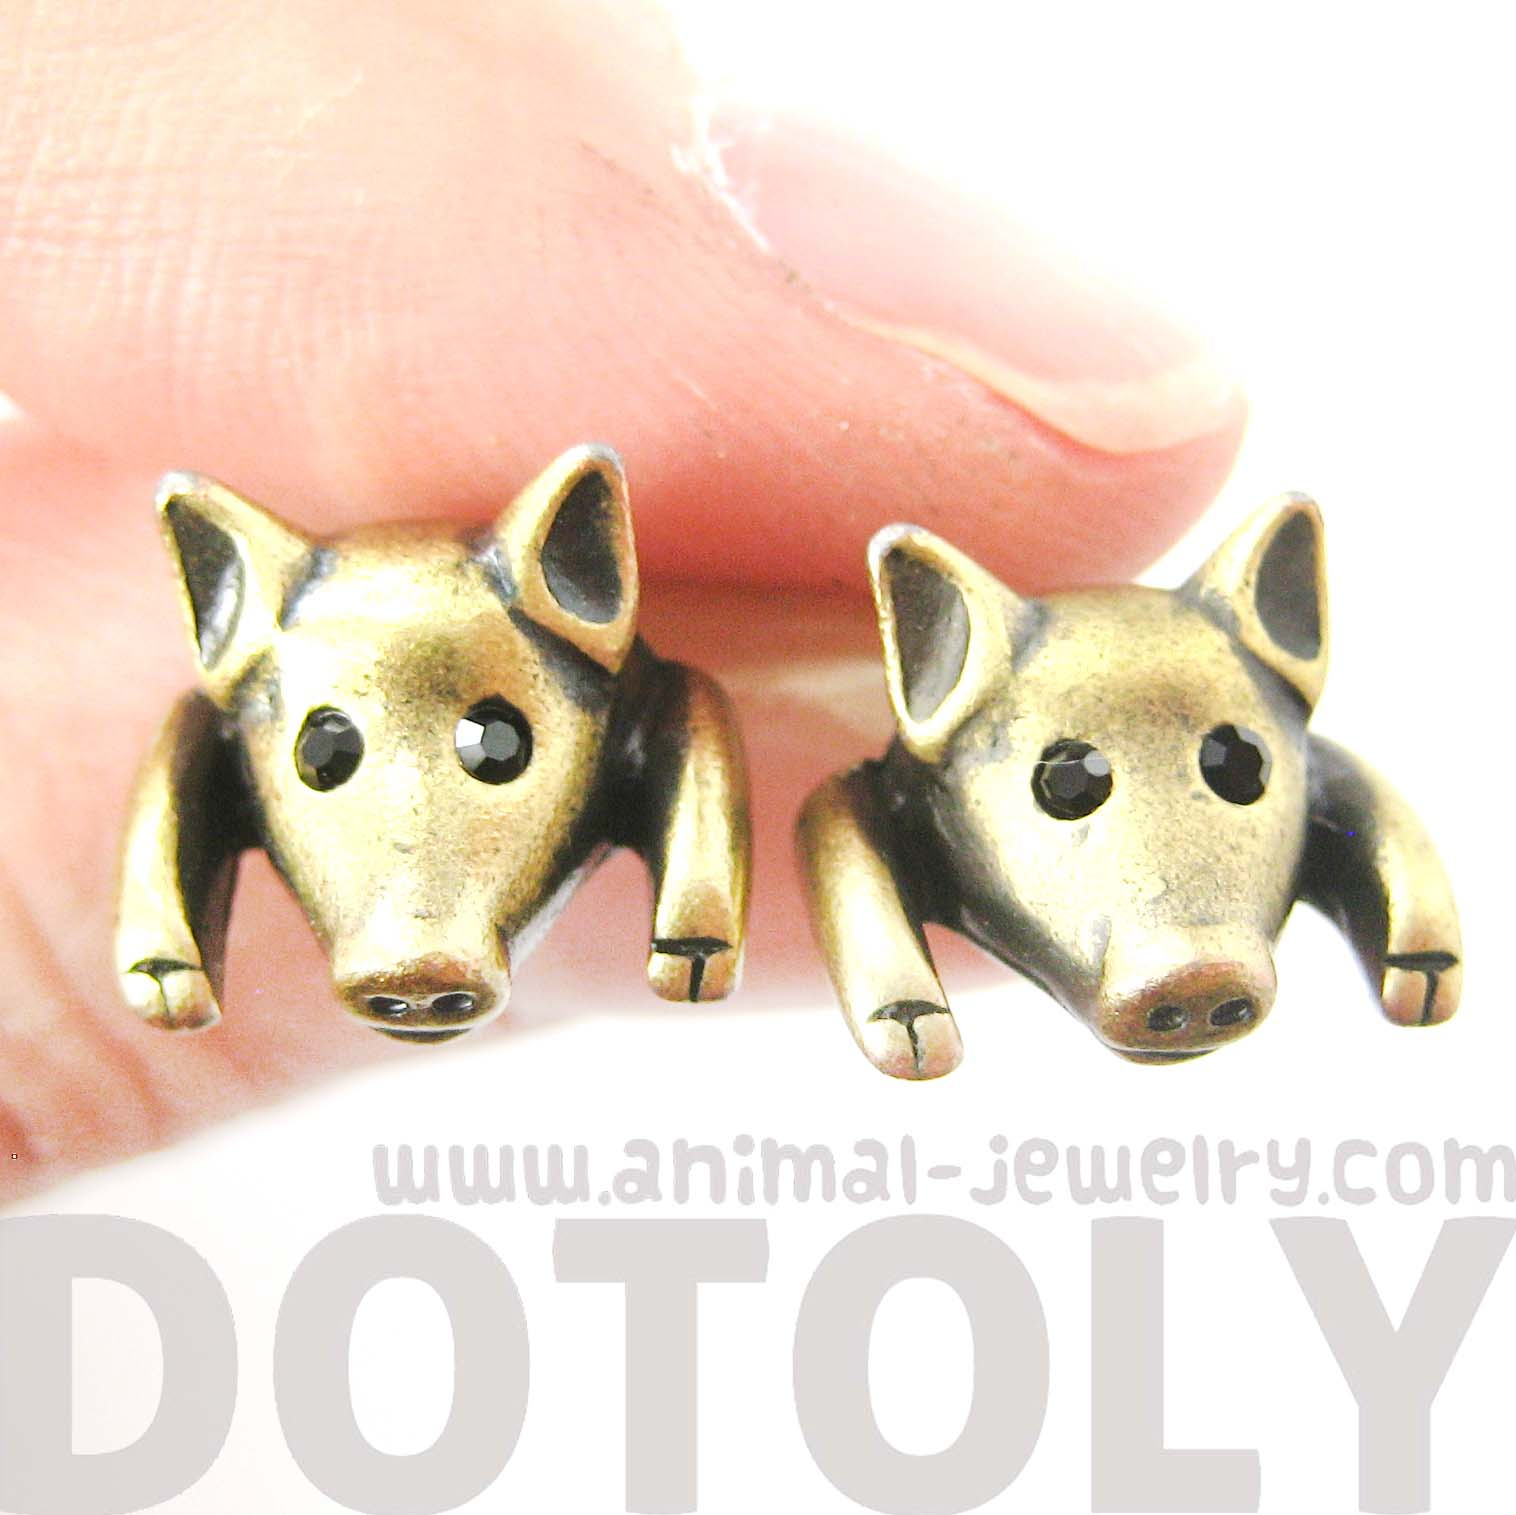 piglet-pig-realistic-animal-stud-earrings-in-brass-animal-jewelry